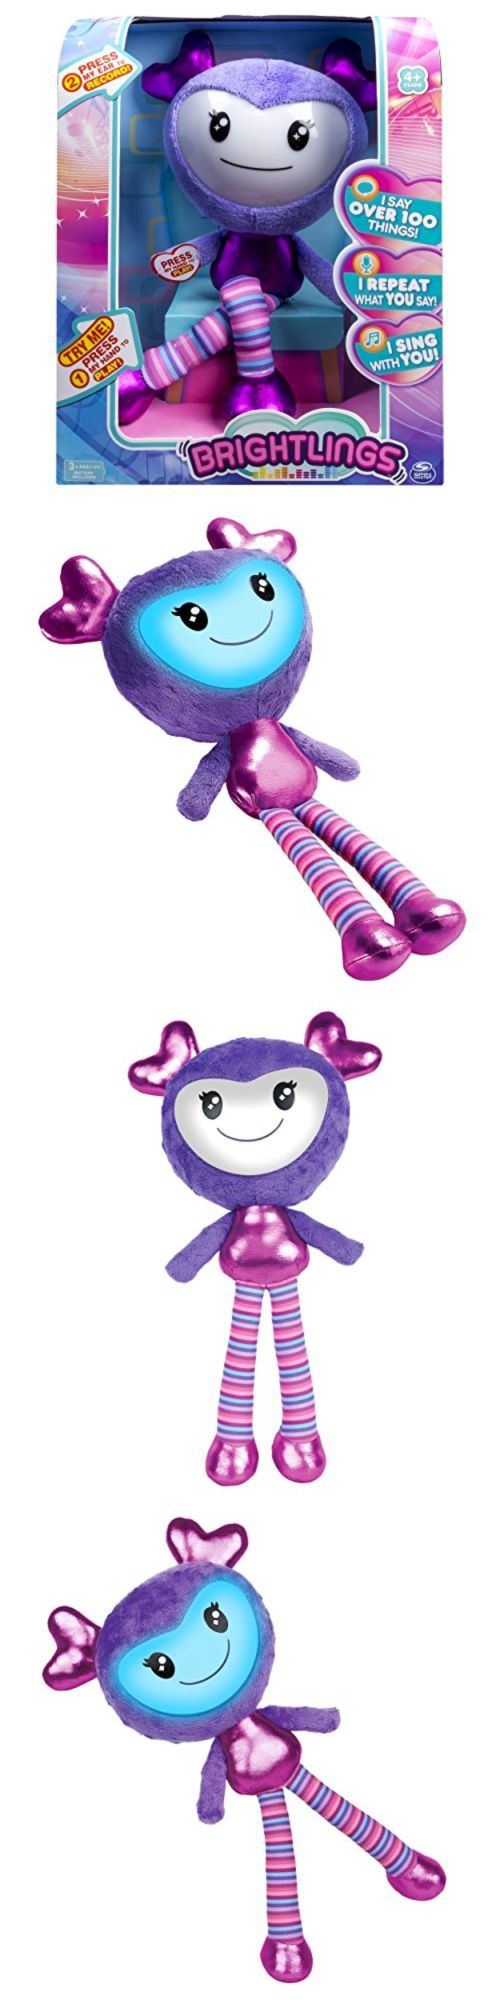 Wiggles 20923: Plush Toy Doll Brightlings Interactive Singing Talking 15 Purple New Girls Gift -> BUY IT NOW ONLY: $31.28 on eBay!